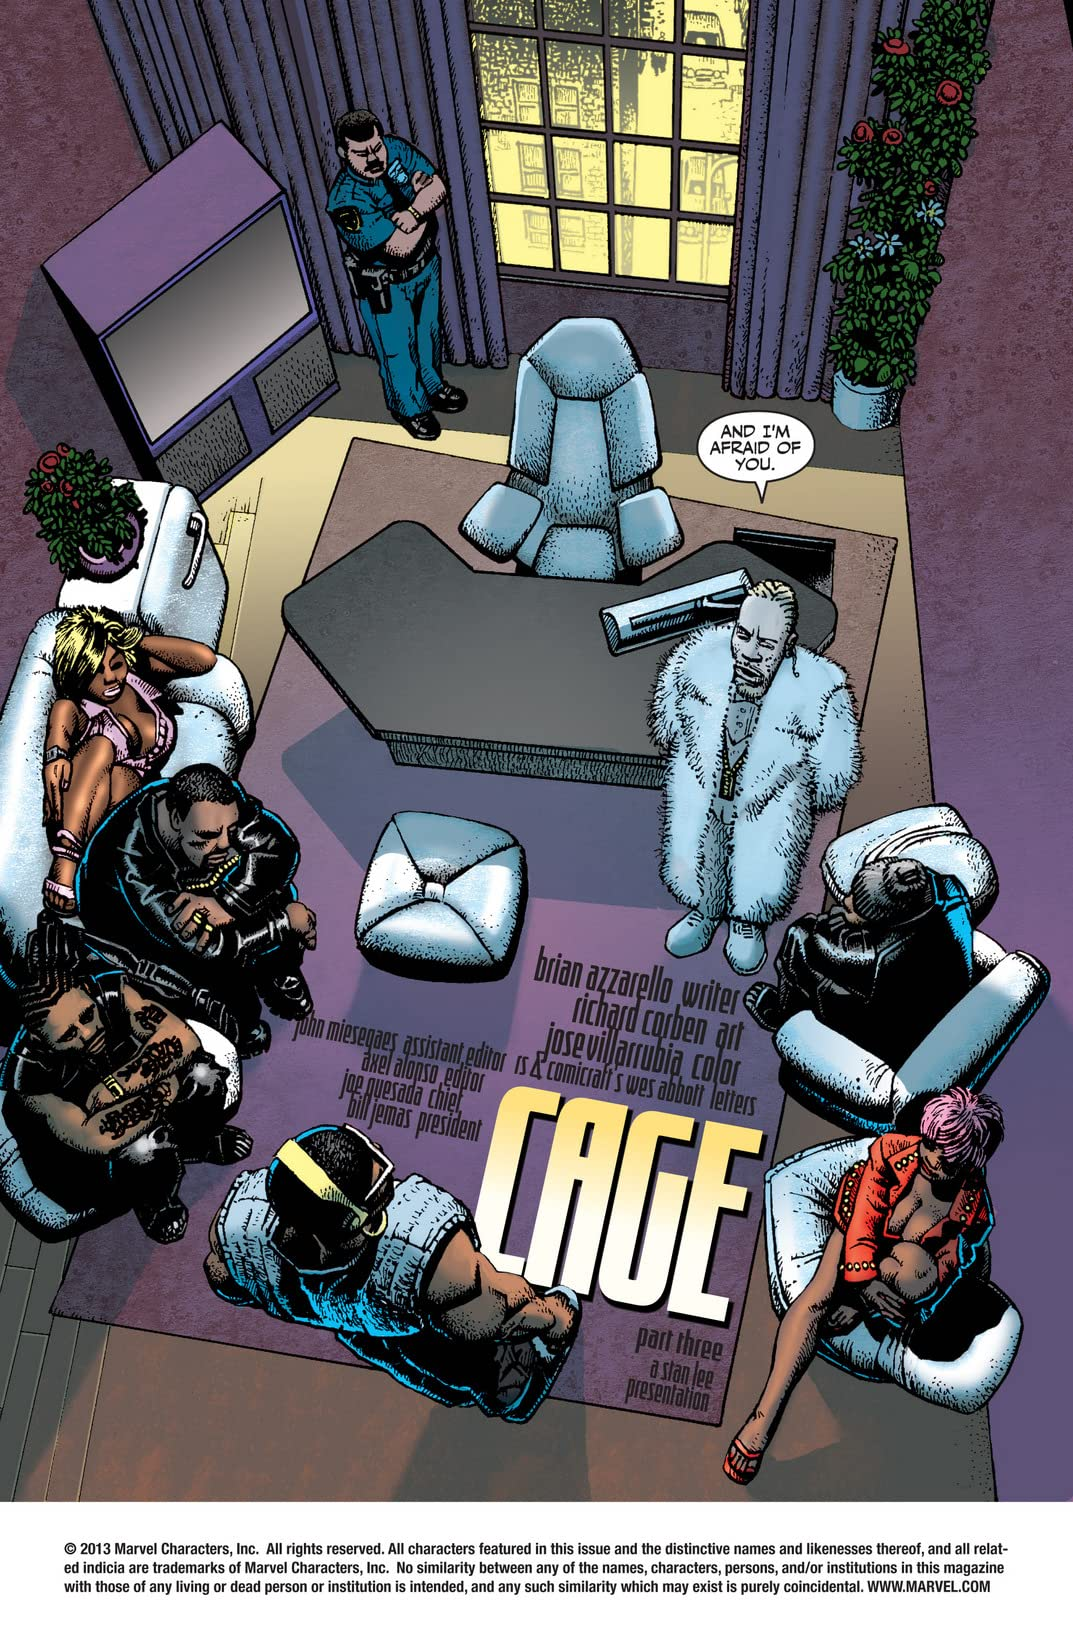 Cage (2002) #3 (of 5)